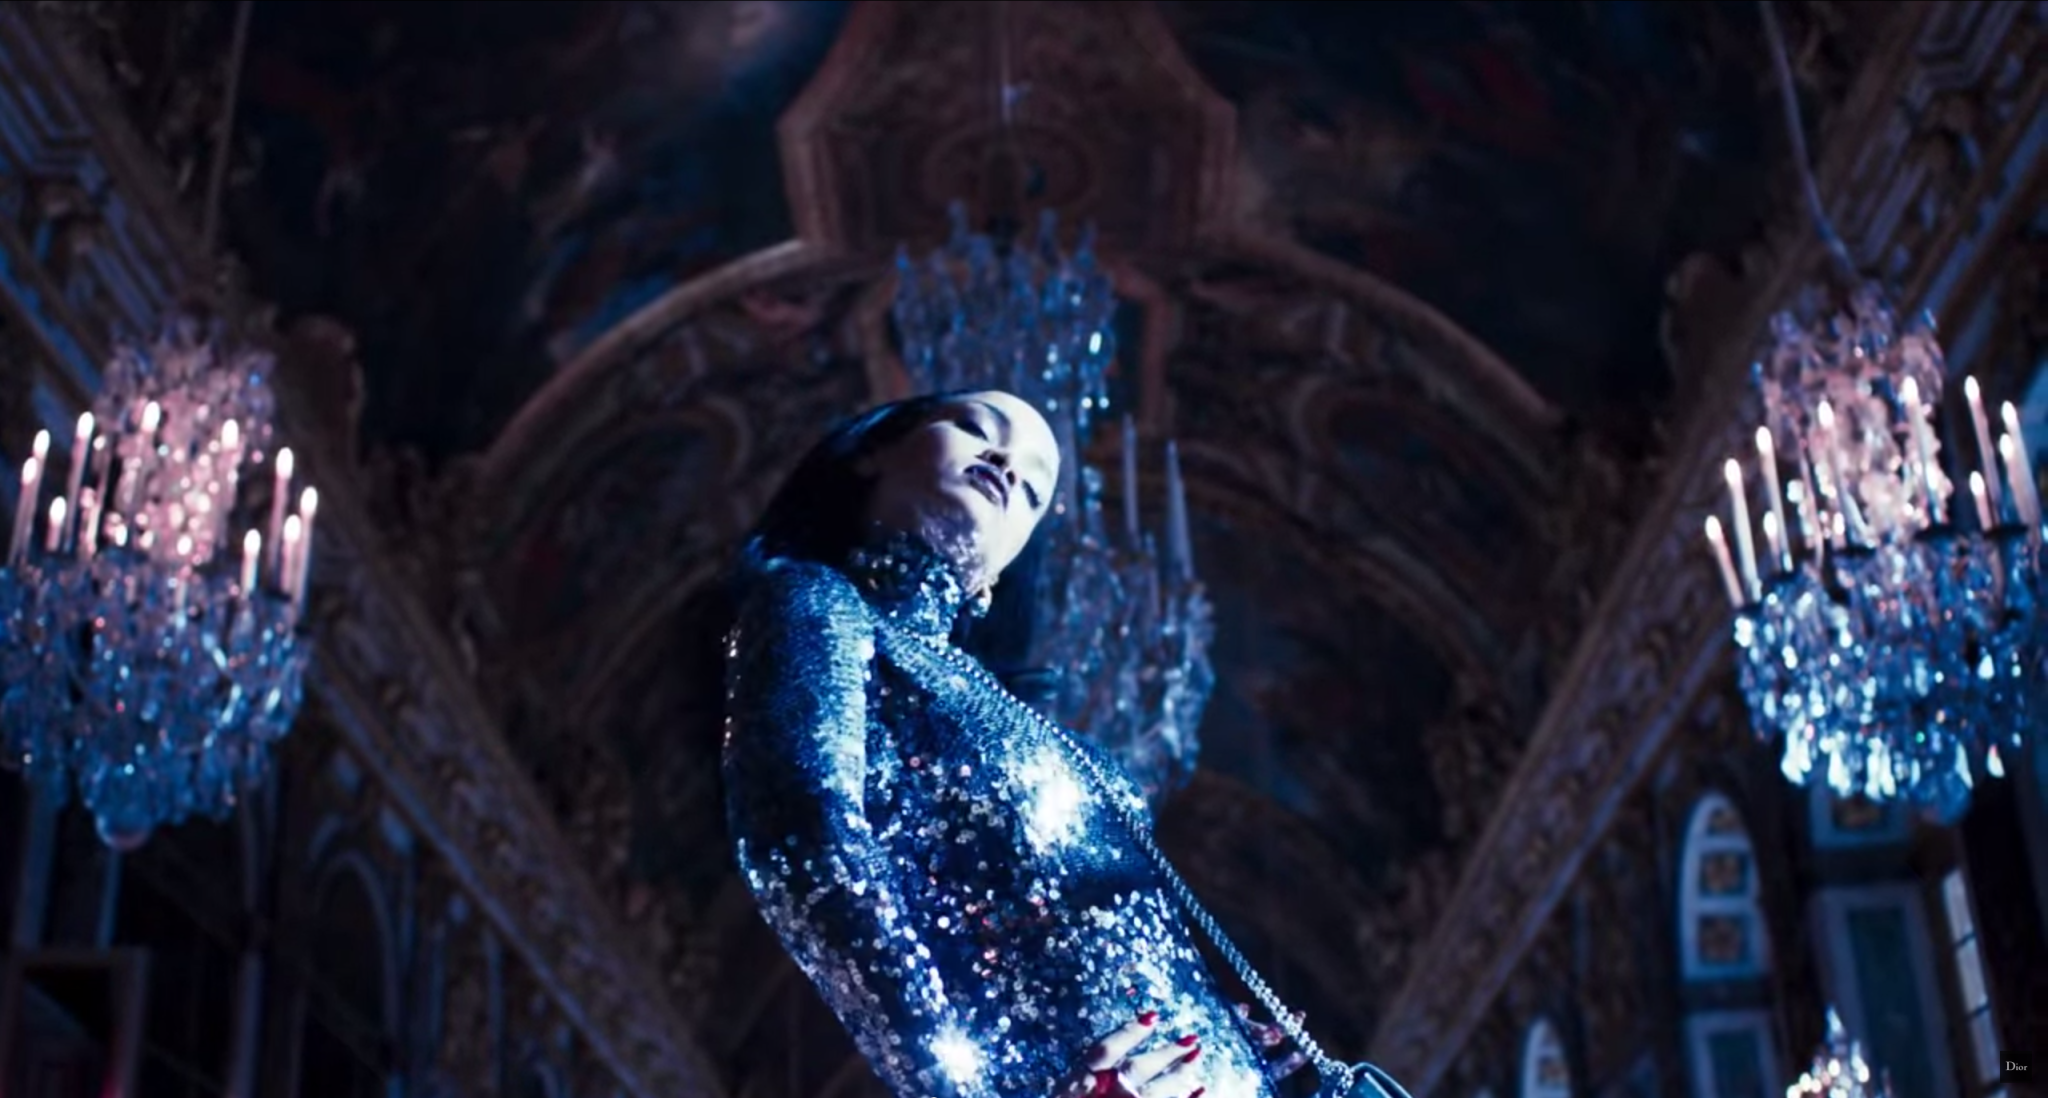 Rihanna Is a Mysterious Fashion Creature in This Creepy-Cool New Dior Commercial